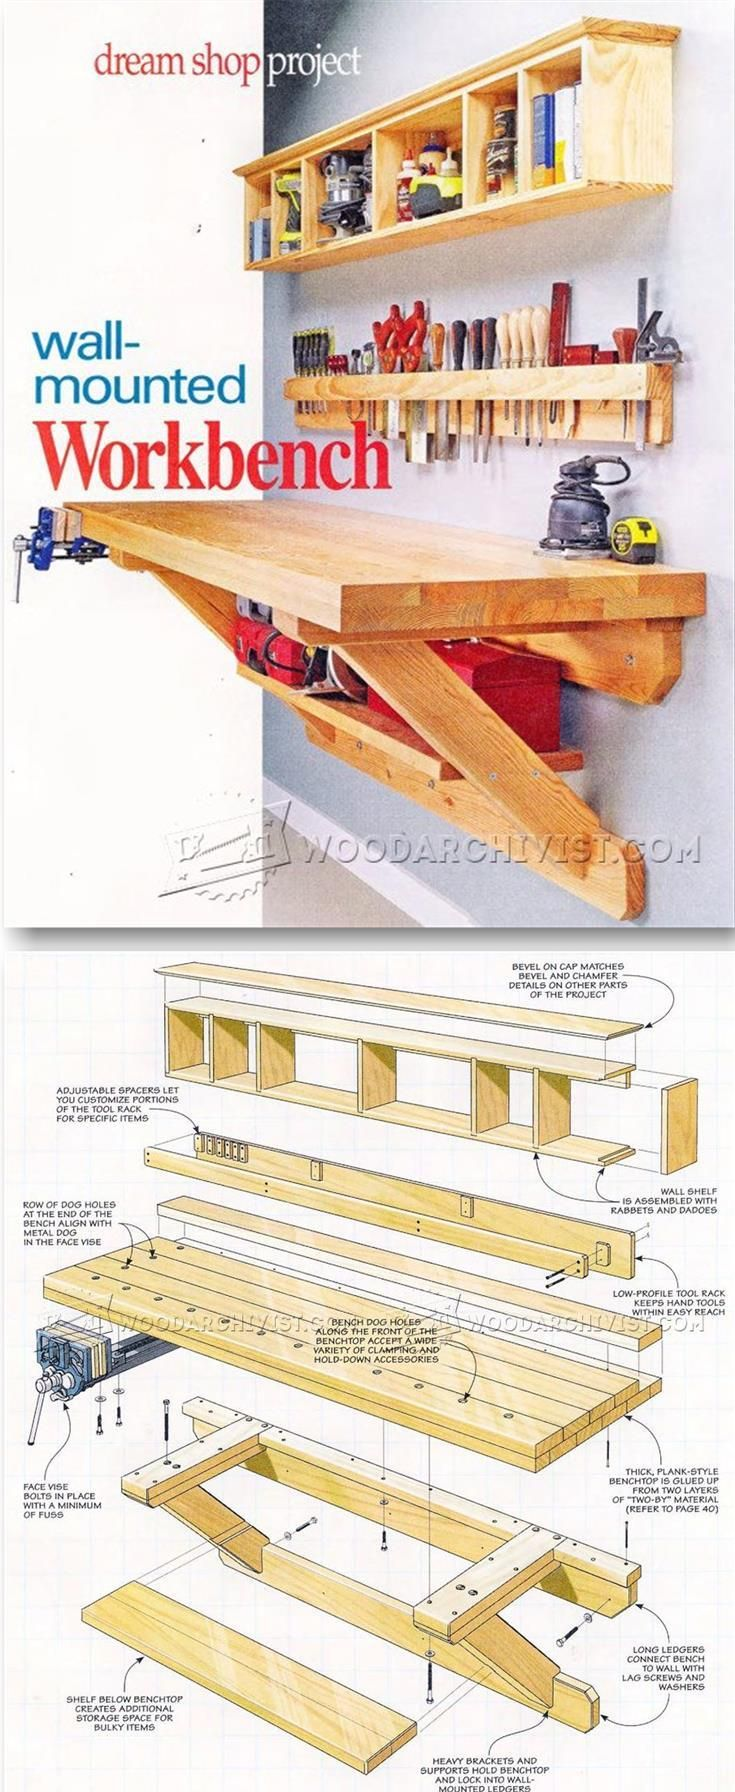 Marvelous Wall Mounted Workbench Plans Workshop Solutions Projects Spiritservingveterans Wood Chair Design Ideas Spiritservingveteransorg